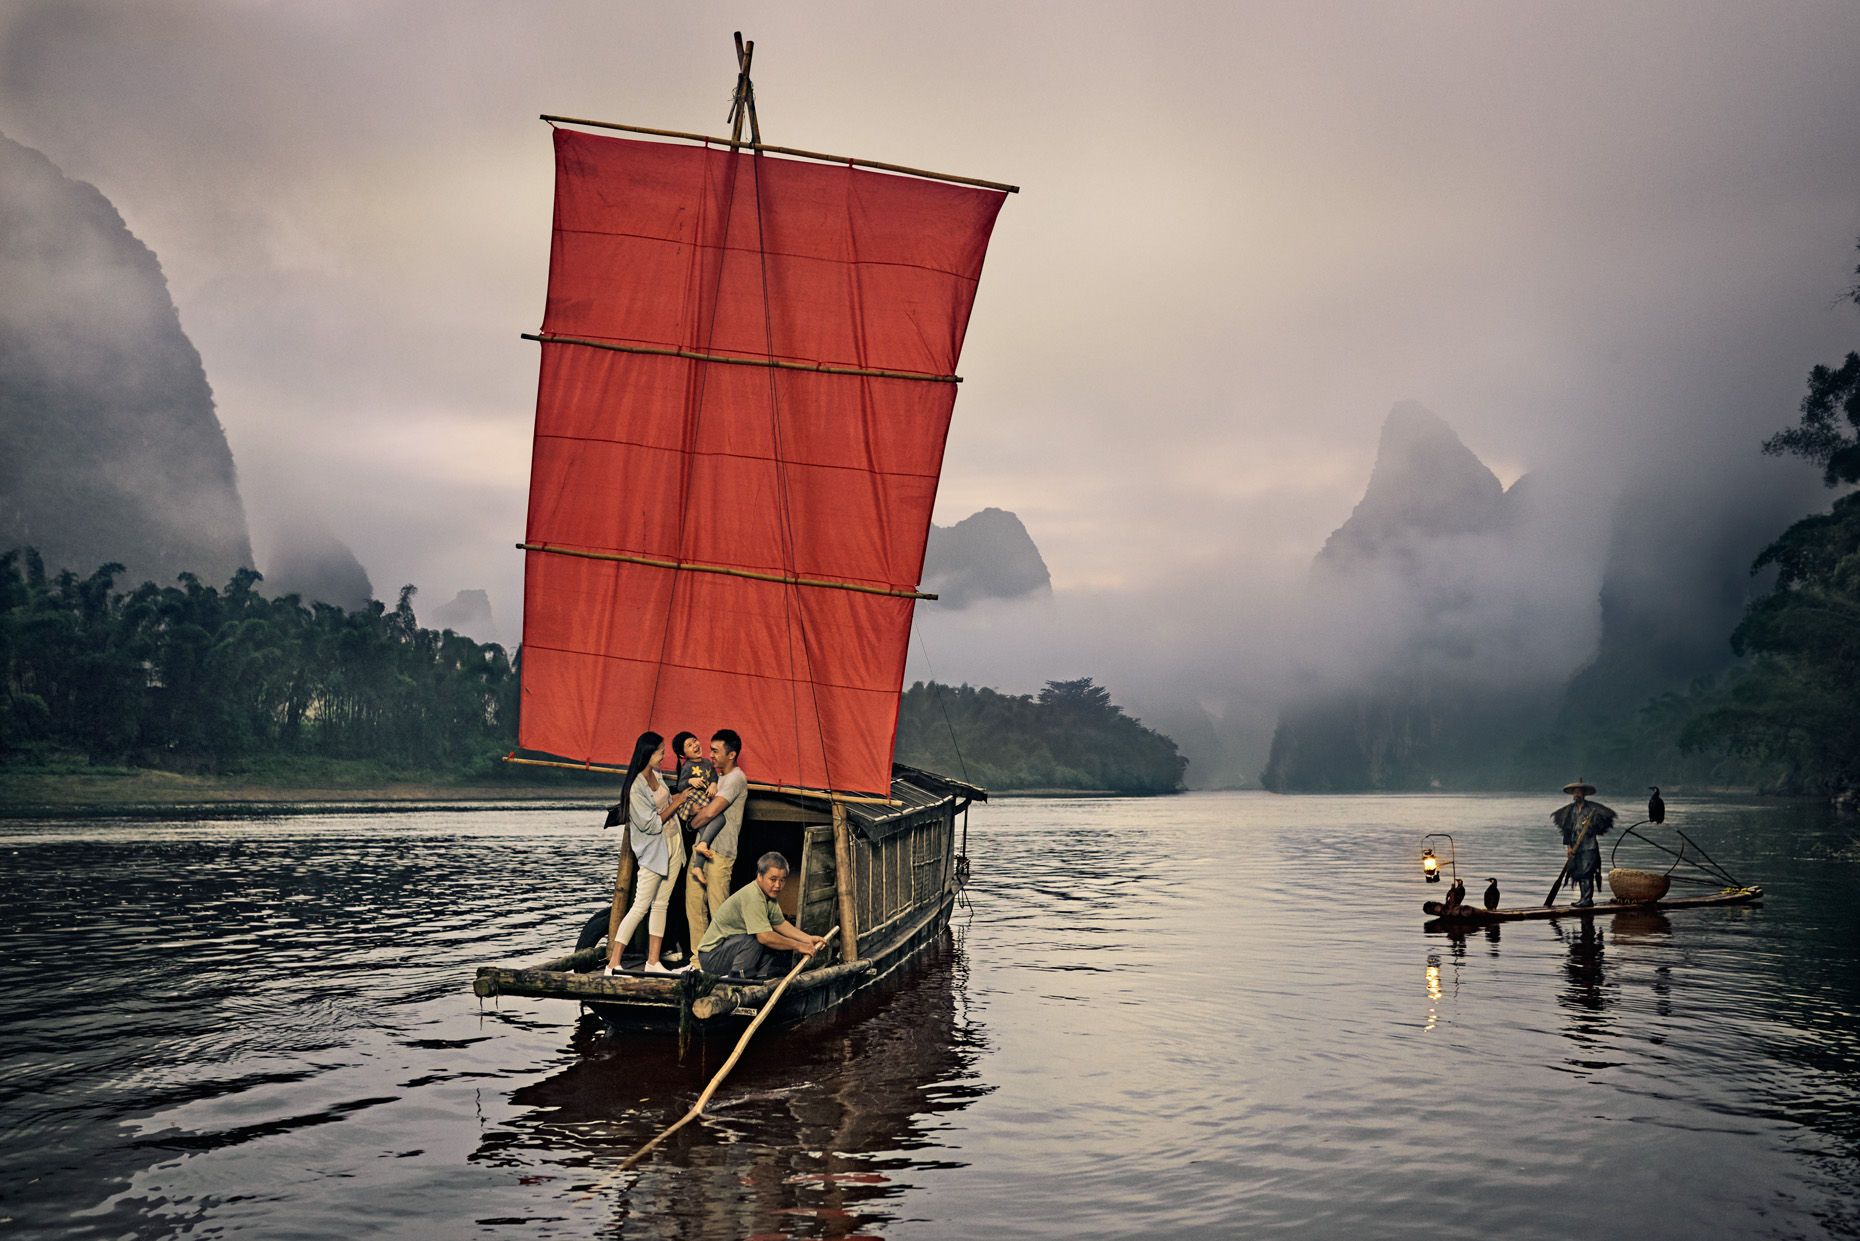 Abbott_China_Yangshou_Shot_01_River_Boat_0258